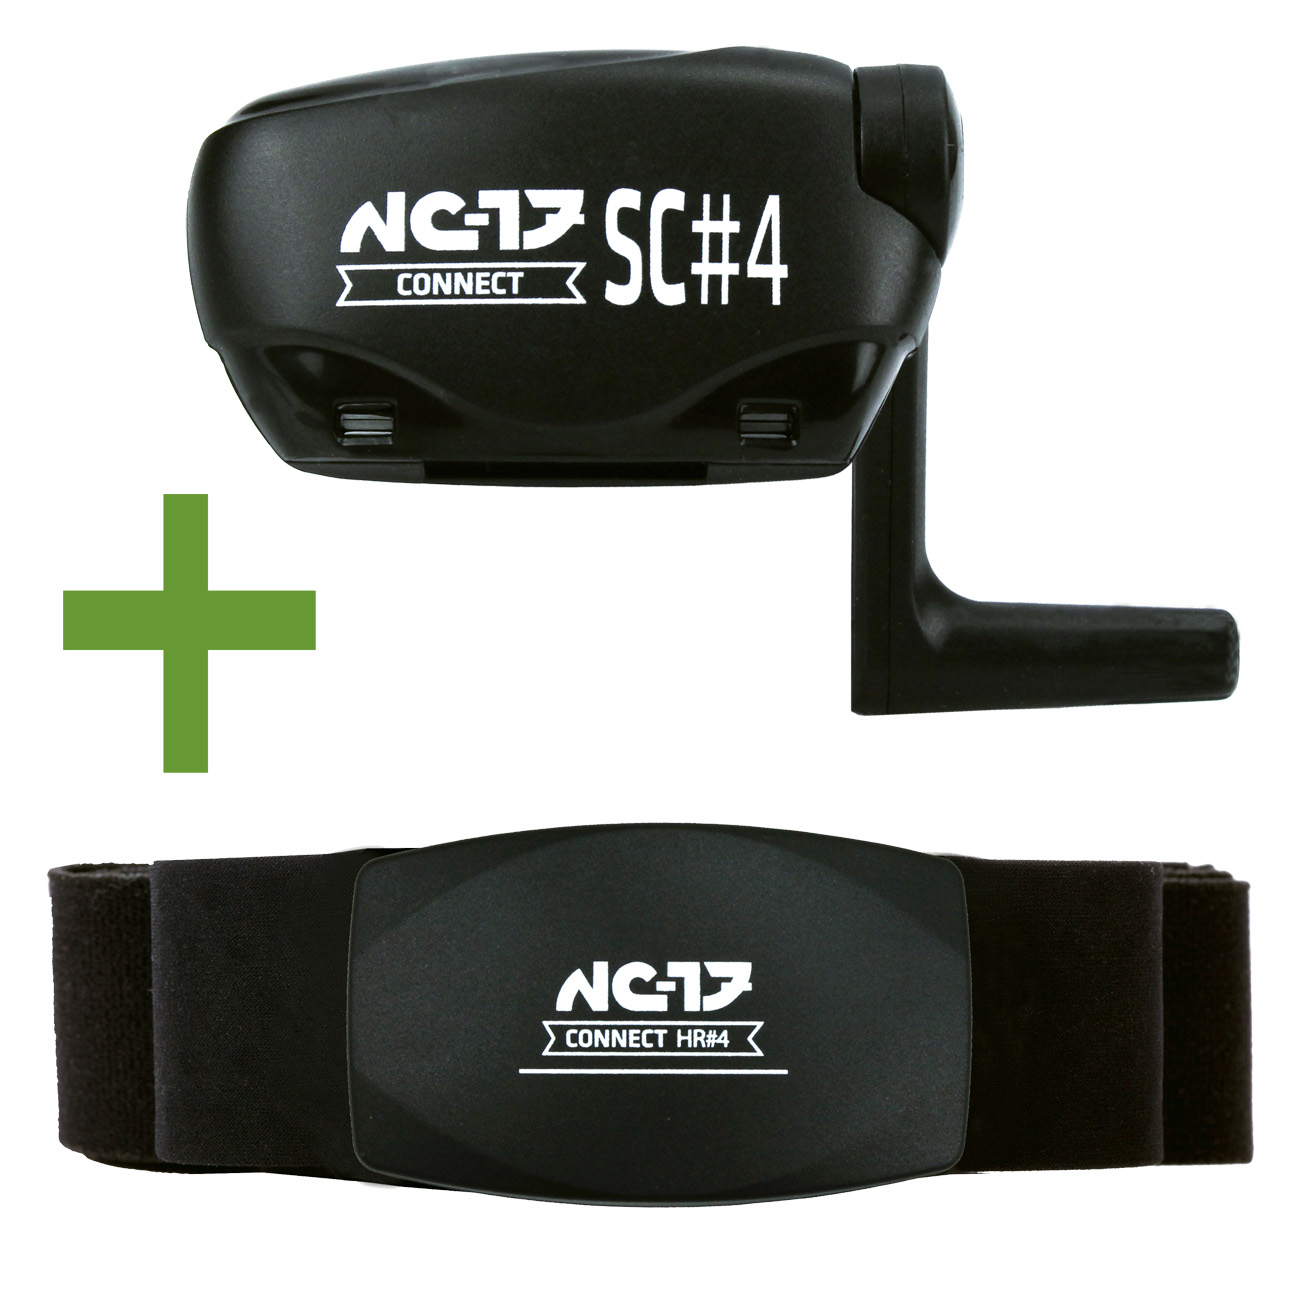 NC-17 Connect Set HR#4 und SC#4<br/>ANT+ und Bluetooth 4.0<br/>&nbsp;&nbsp;